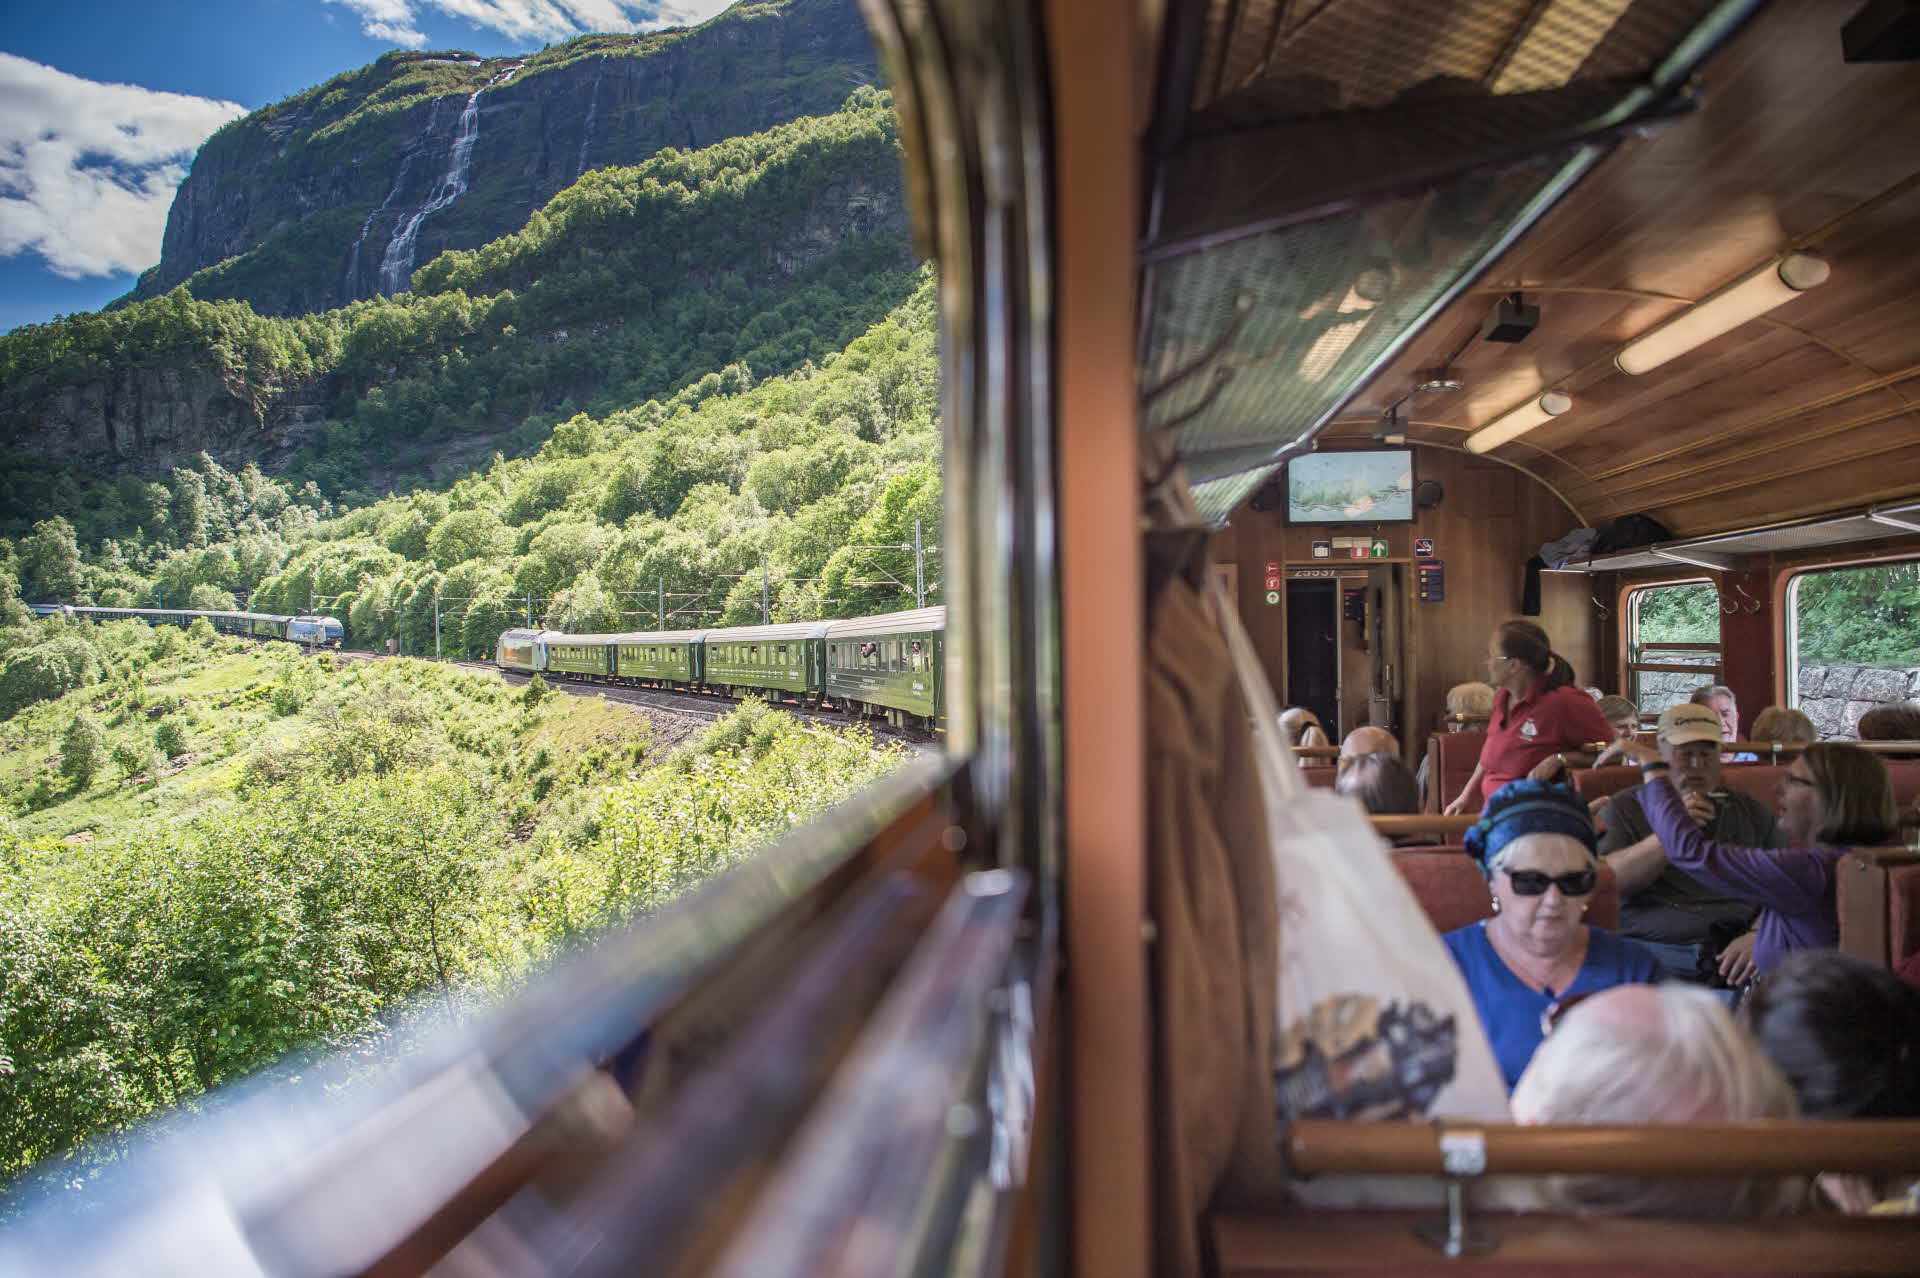 View from inside Flåmsbana carriage as oncoming train is passing at Berekvam Station